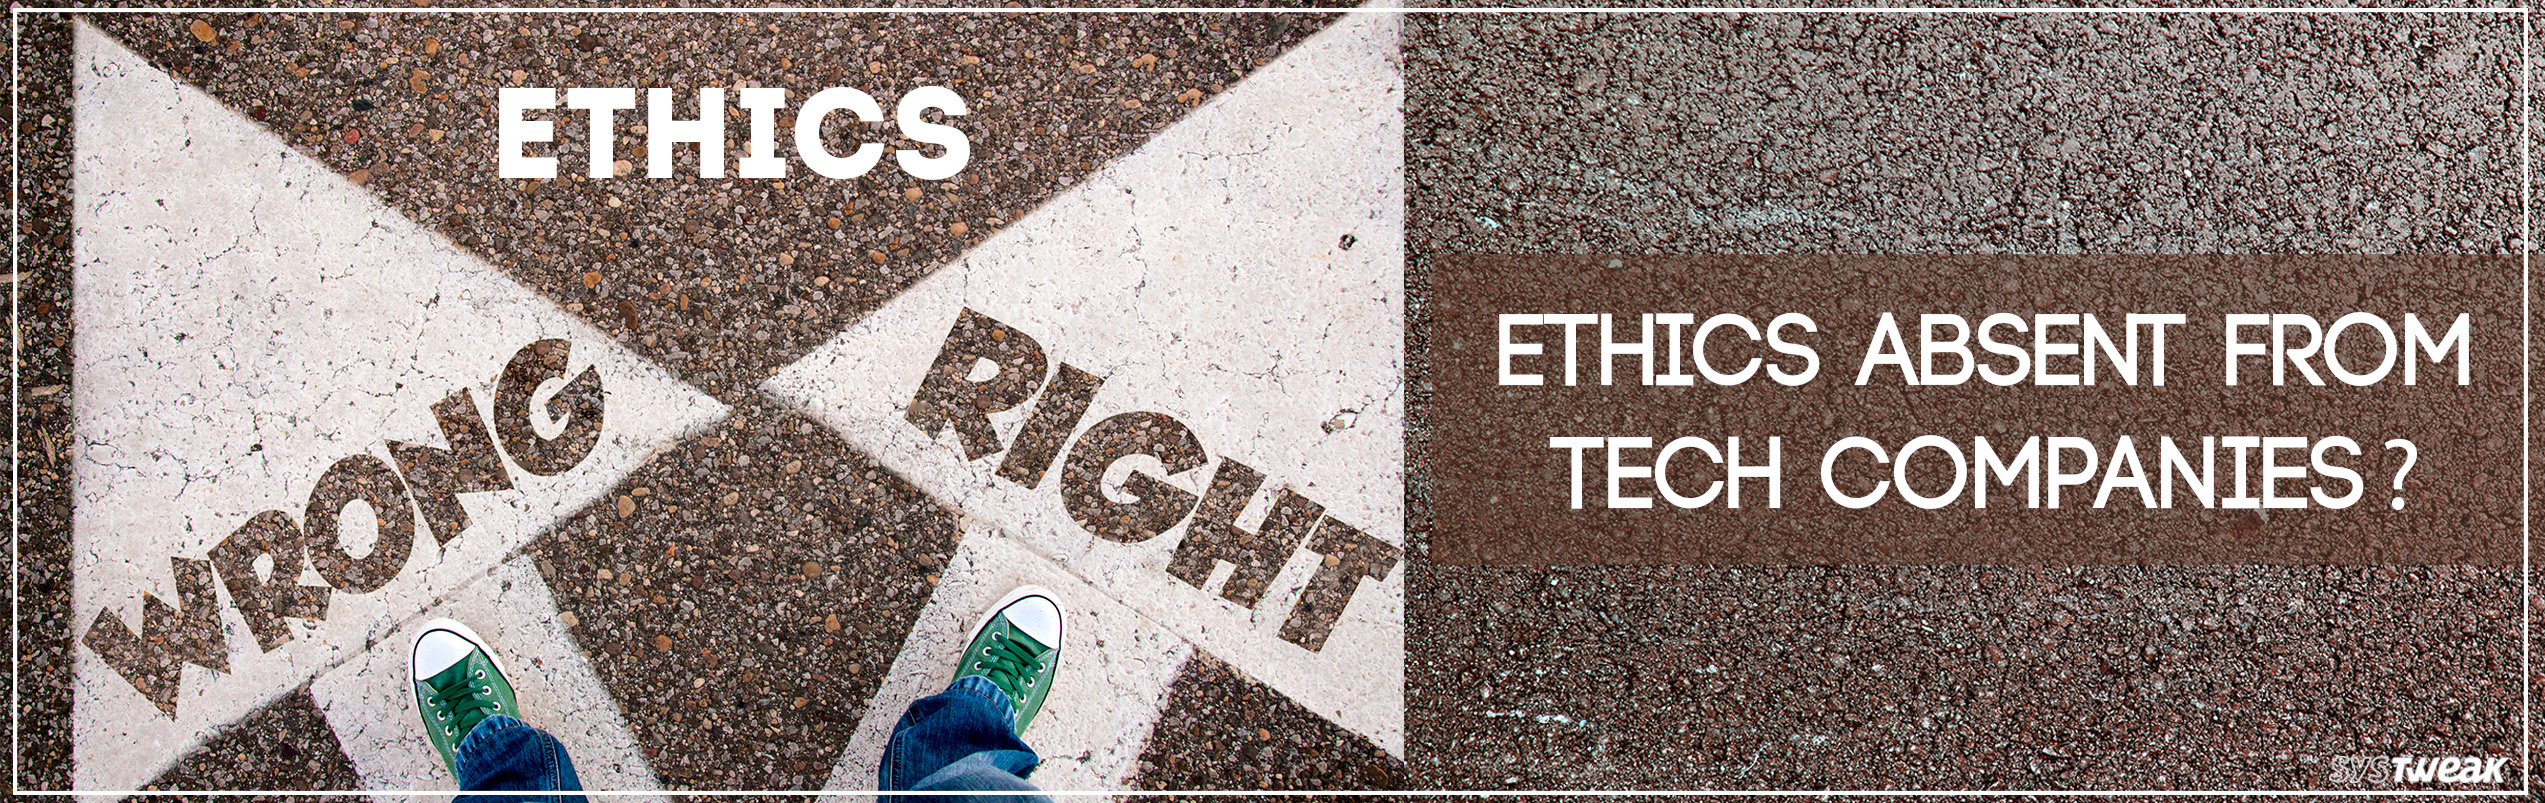 Ethics: Tech Companies Pay Attention!